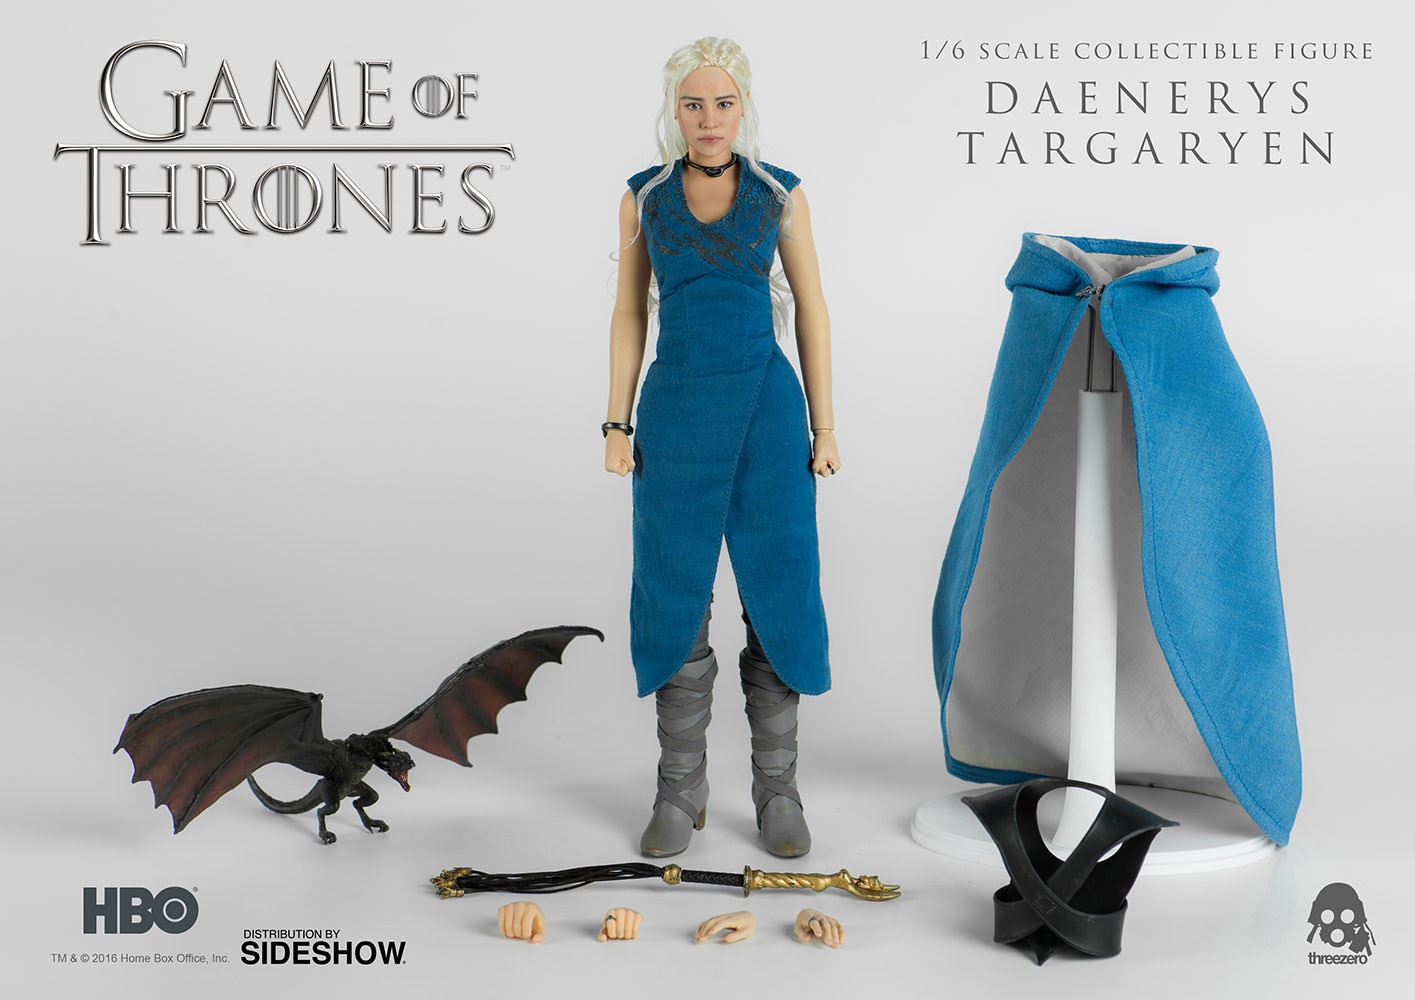 game-of-thrones-daenerys-targaryen-sixth-scale-figure-threezero-902928-01 Figurine - Game of Thrones - Daenerys